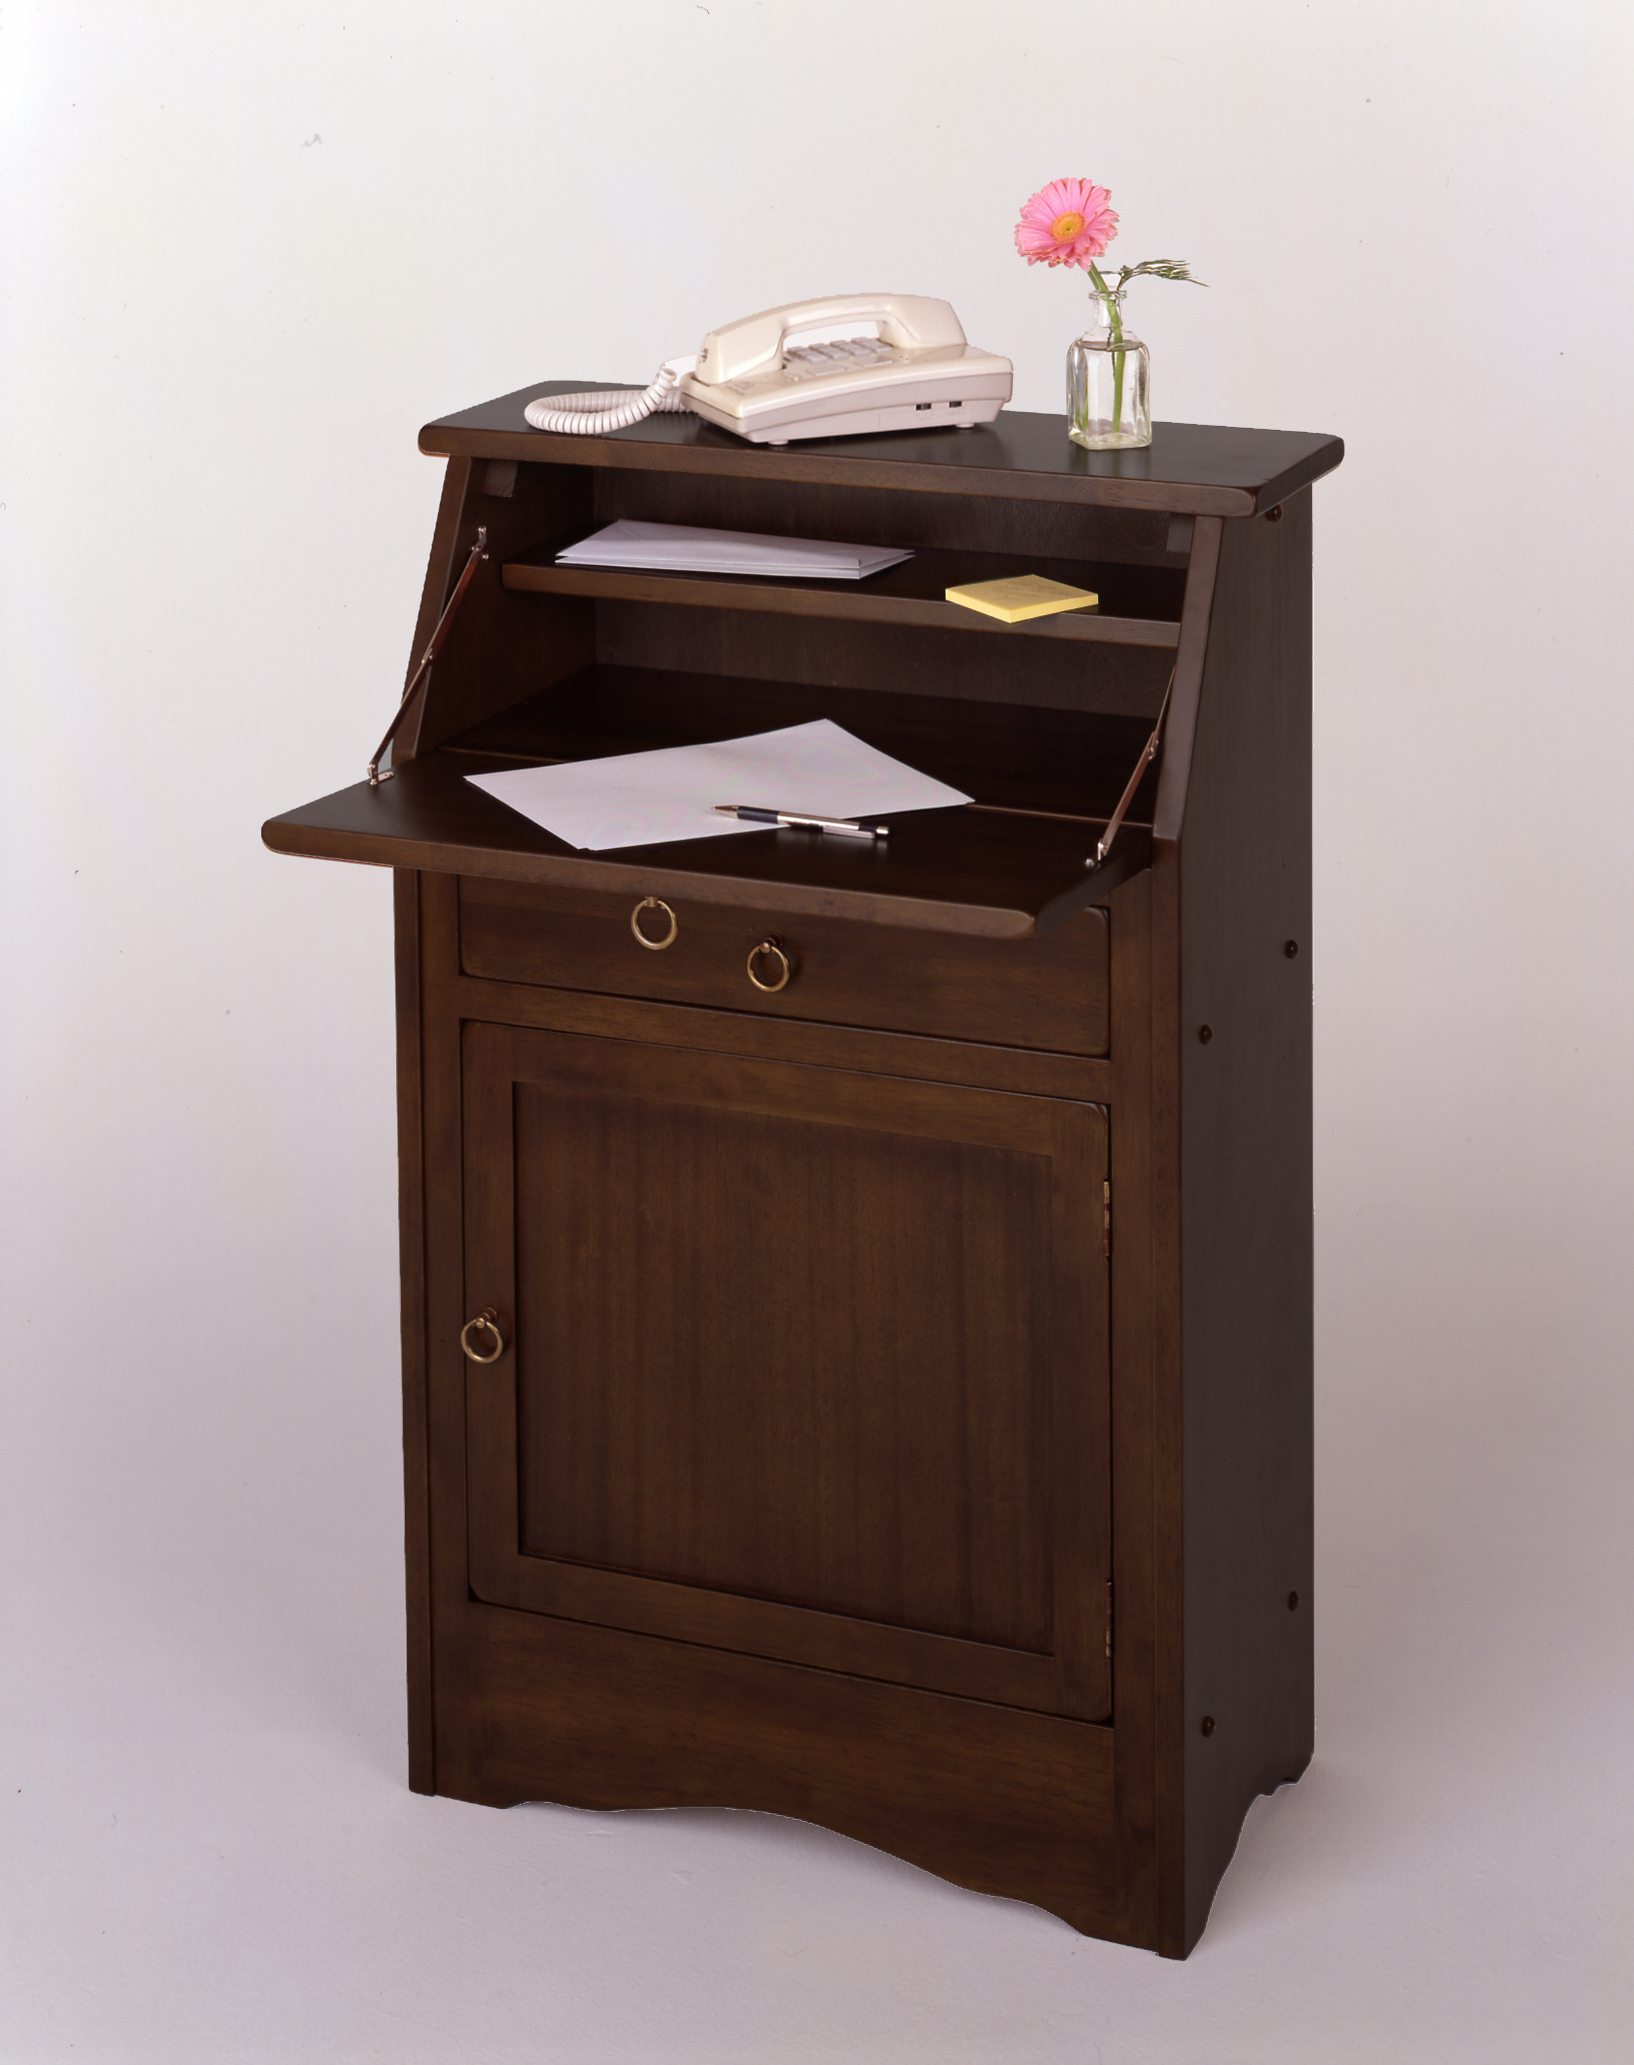 Winsome 94339 Walnut Beechwood SECRETARY DESK